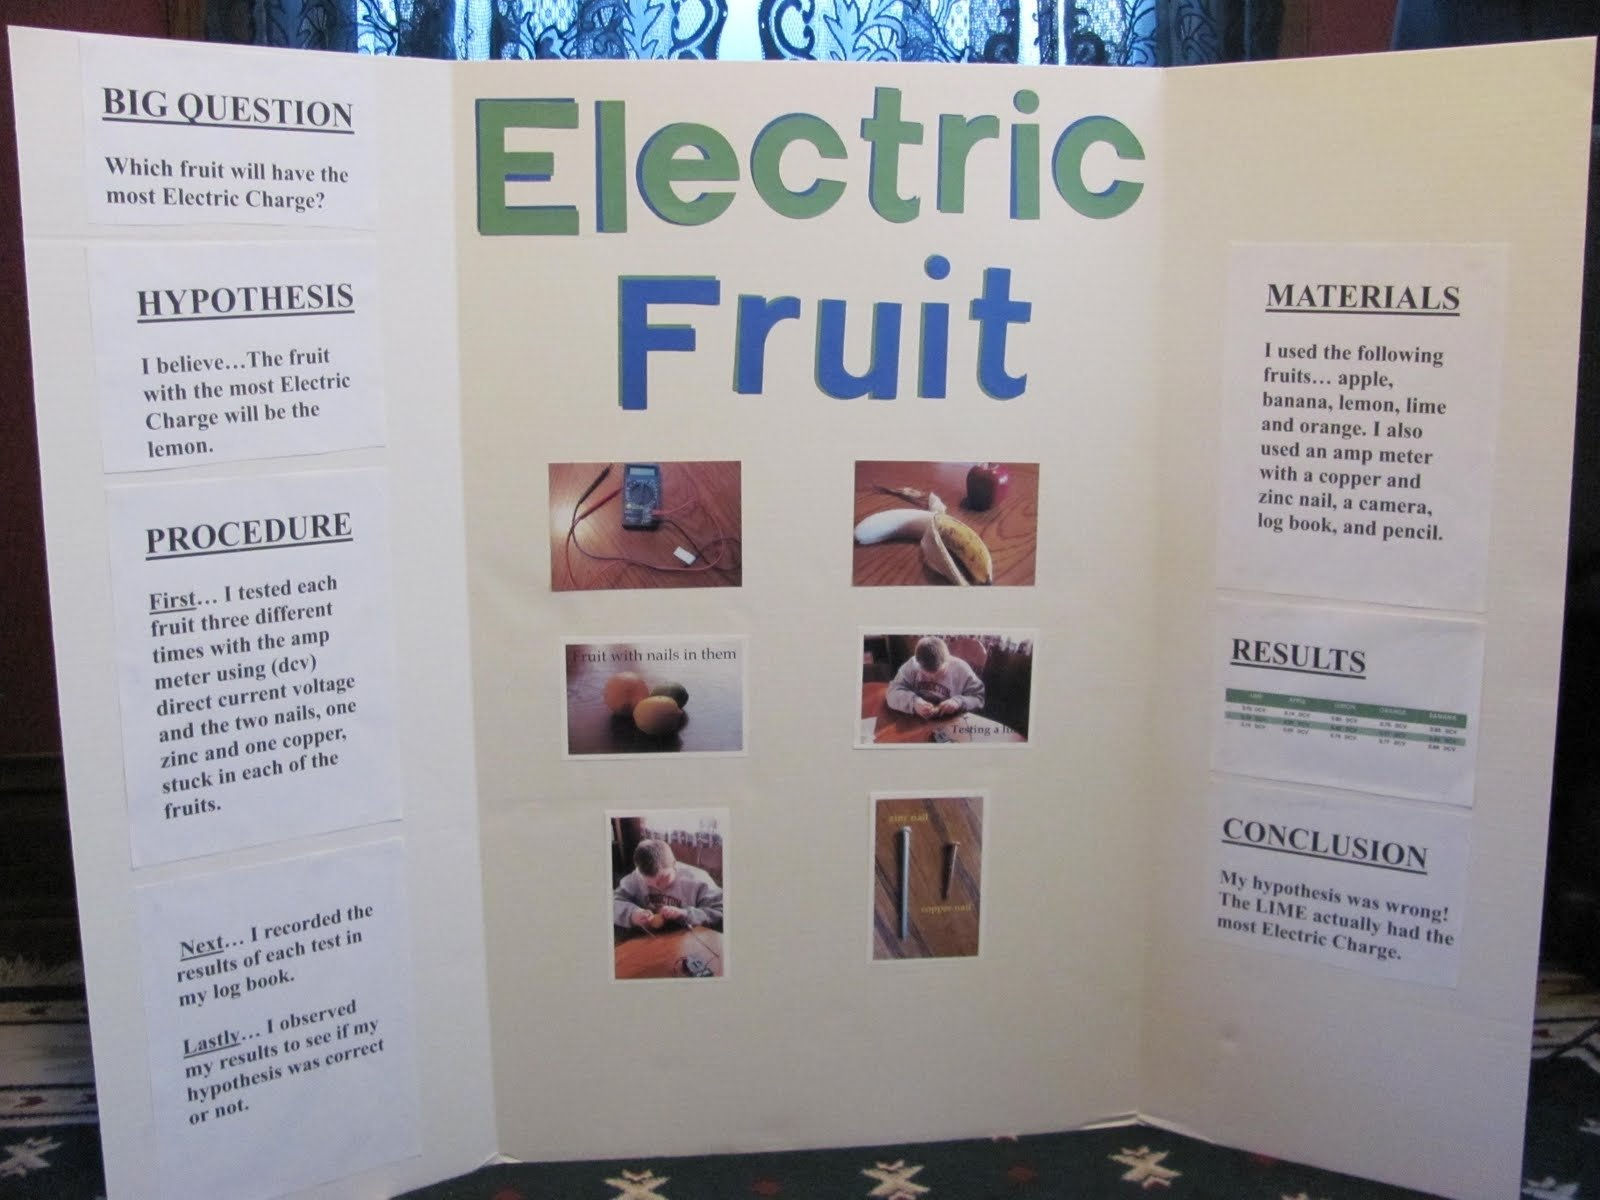 10 Elegant Science Fair Projects Ideas For 6Th Grade science fair projects he estimated the lemon would but actually 9